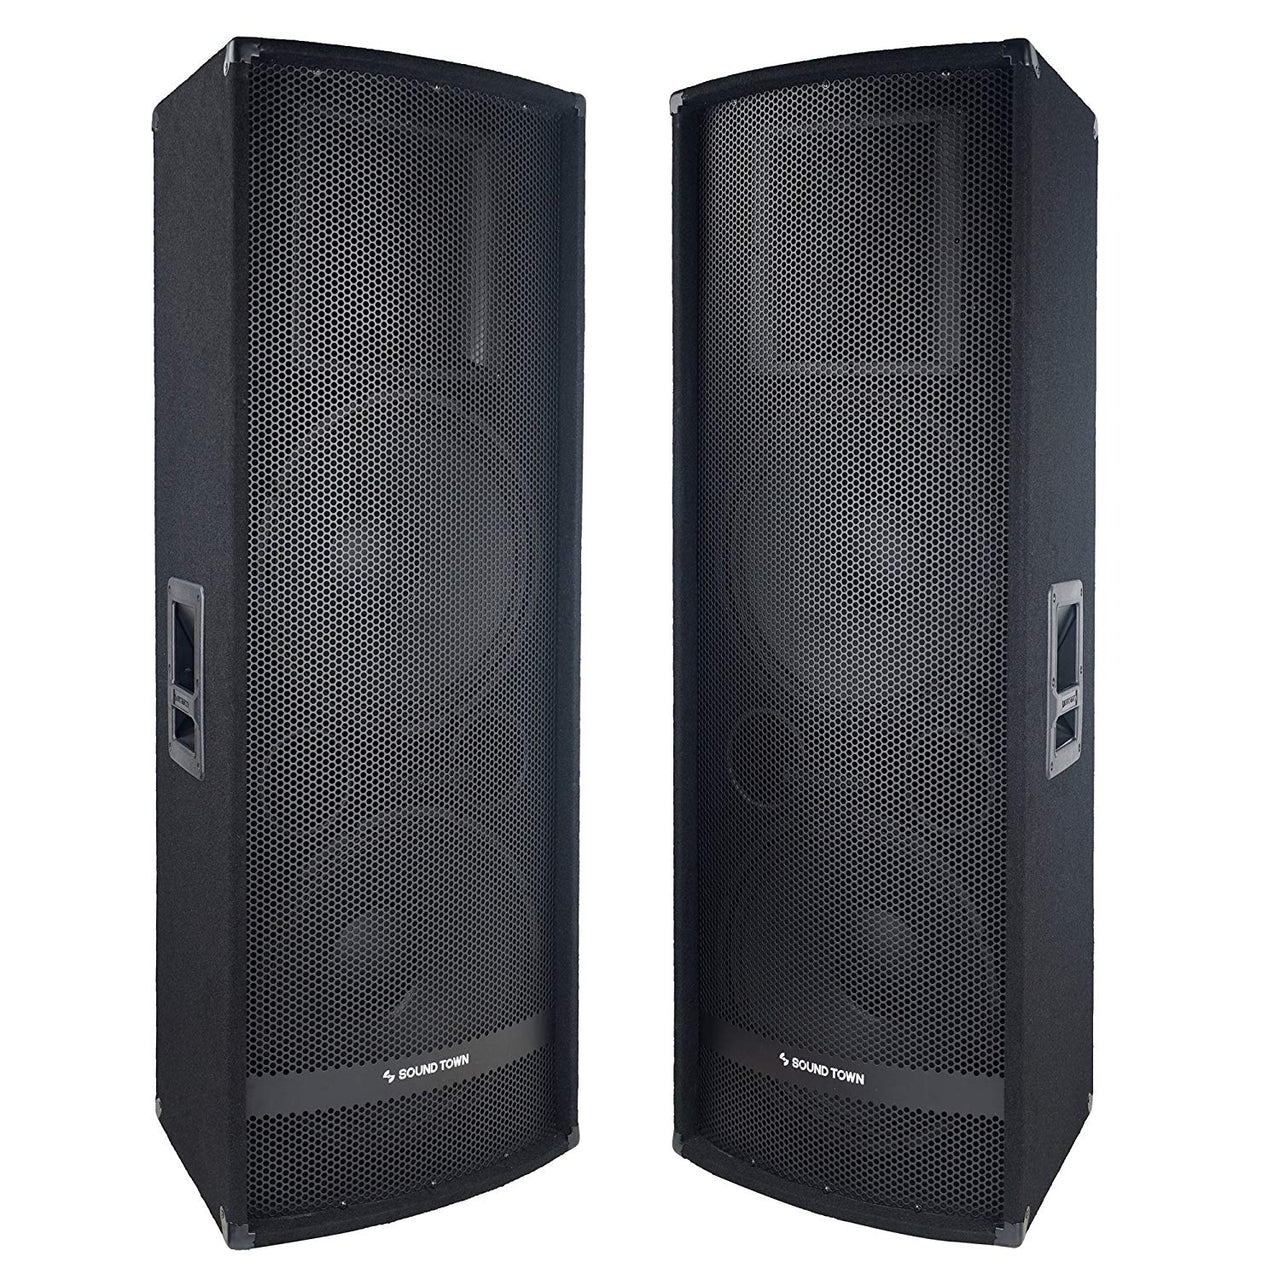 "METIS-215-PAIR<br/>METIS Series 2-Pack Dual 15"" 1400W 2-Way Full-range Passive DJ PA Pro Audio Speaker with Titanium Compression Driver for Live Sound, Karaoke, Bar, Church"